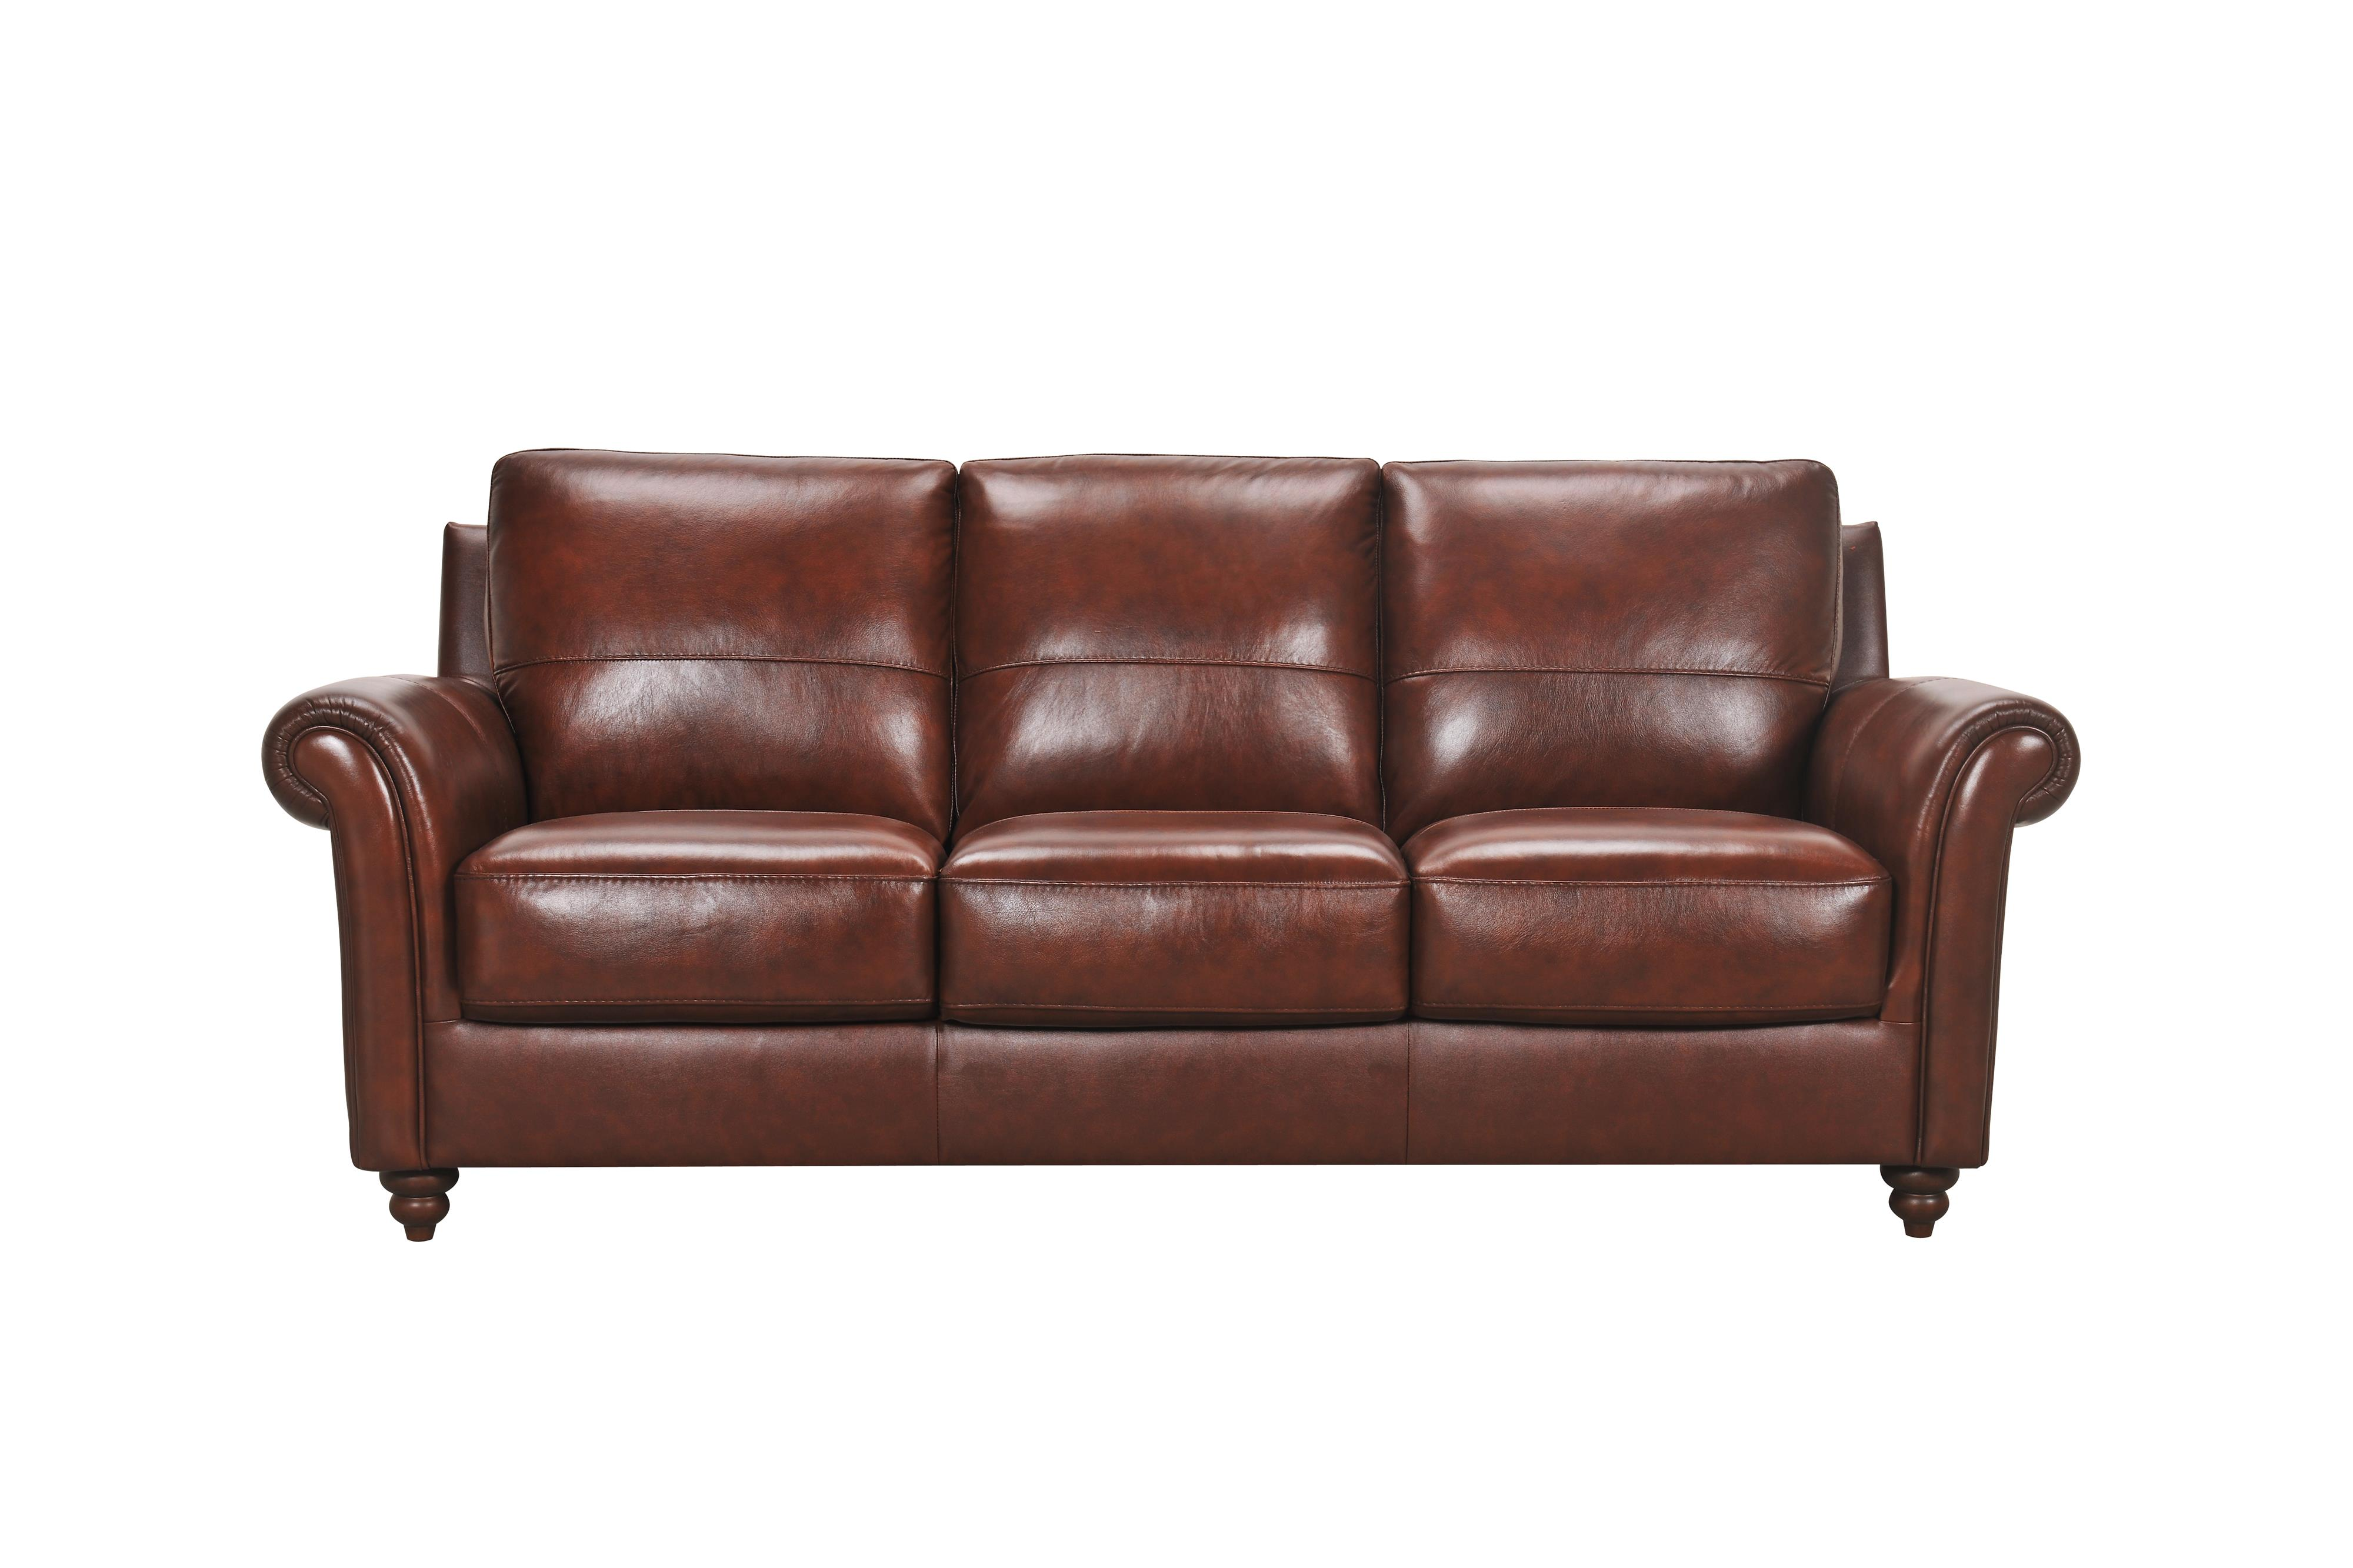 Leather Sofa with Rolled Arms and Turned Wood Feet